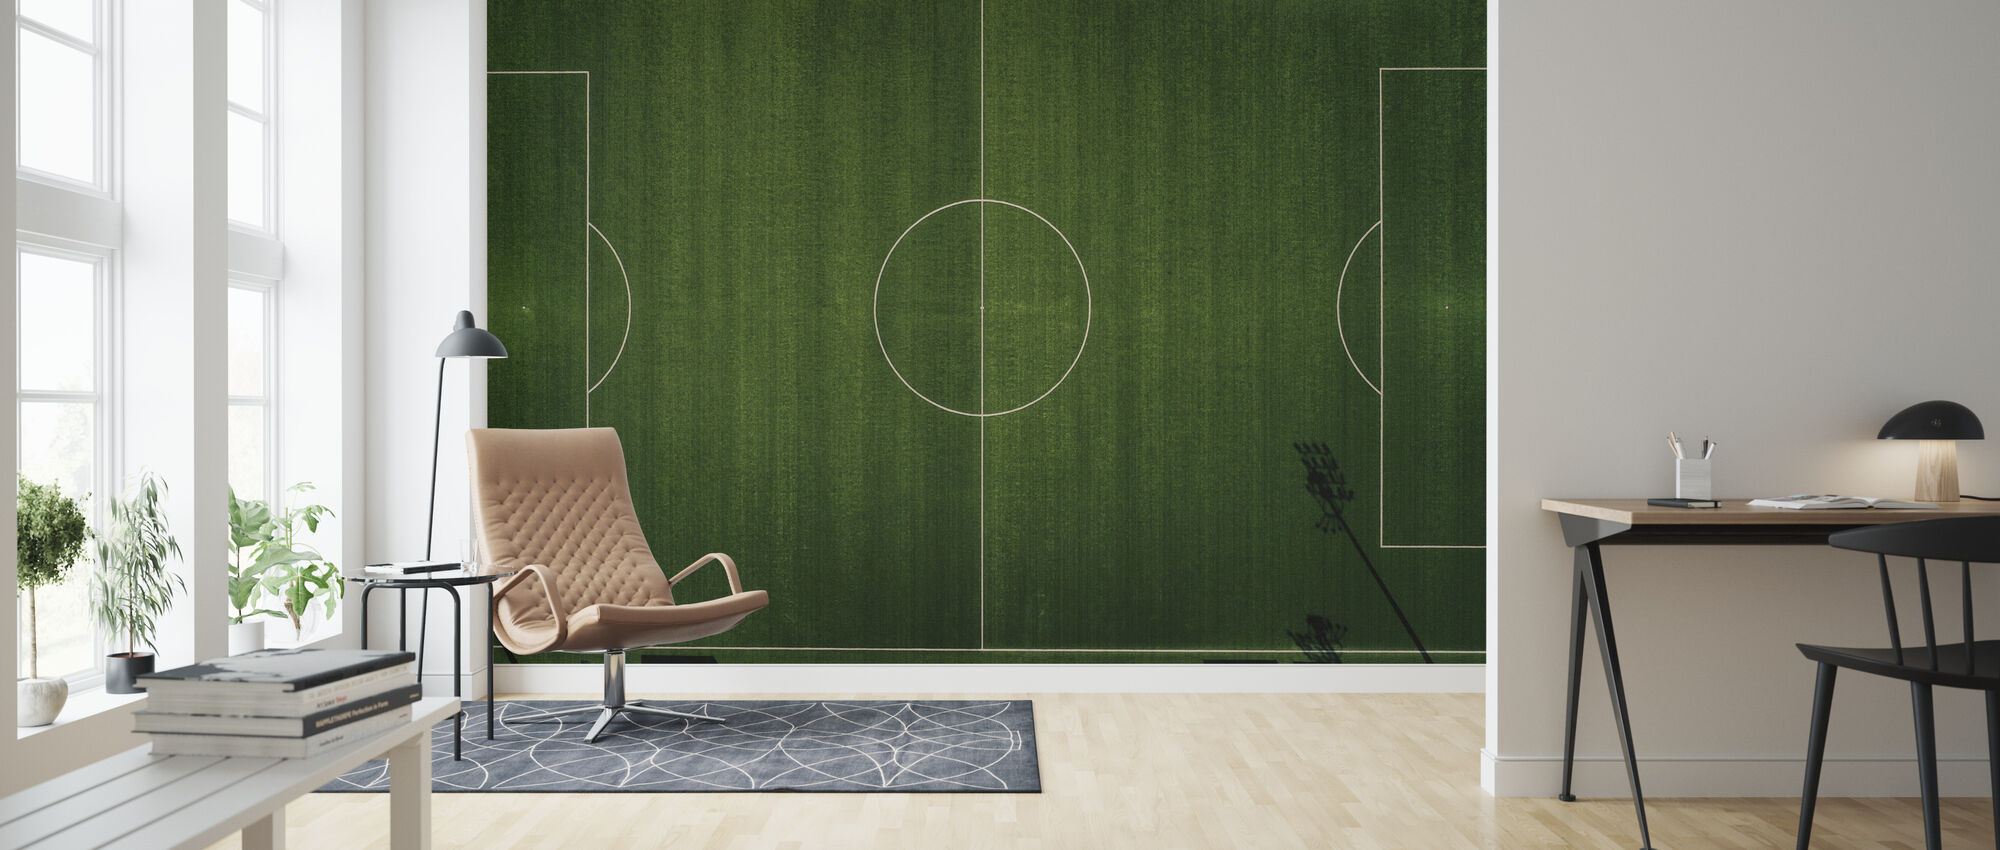 Soccer Field View - Wallpaper - Living Room